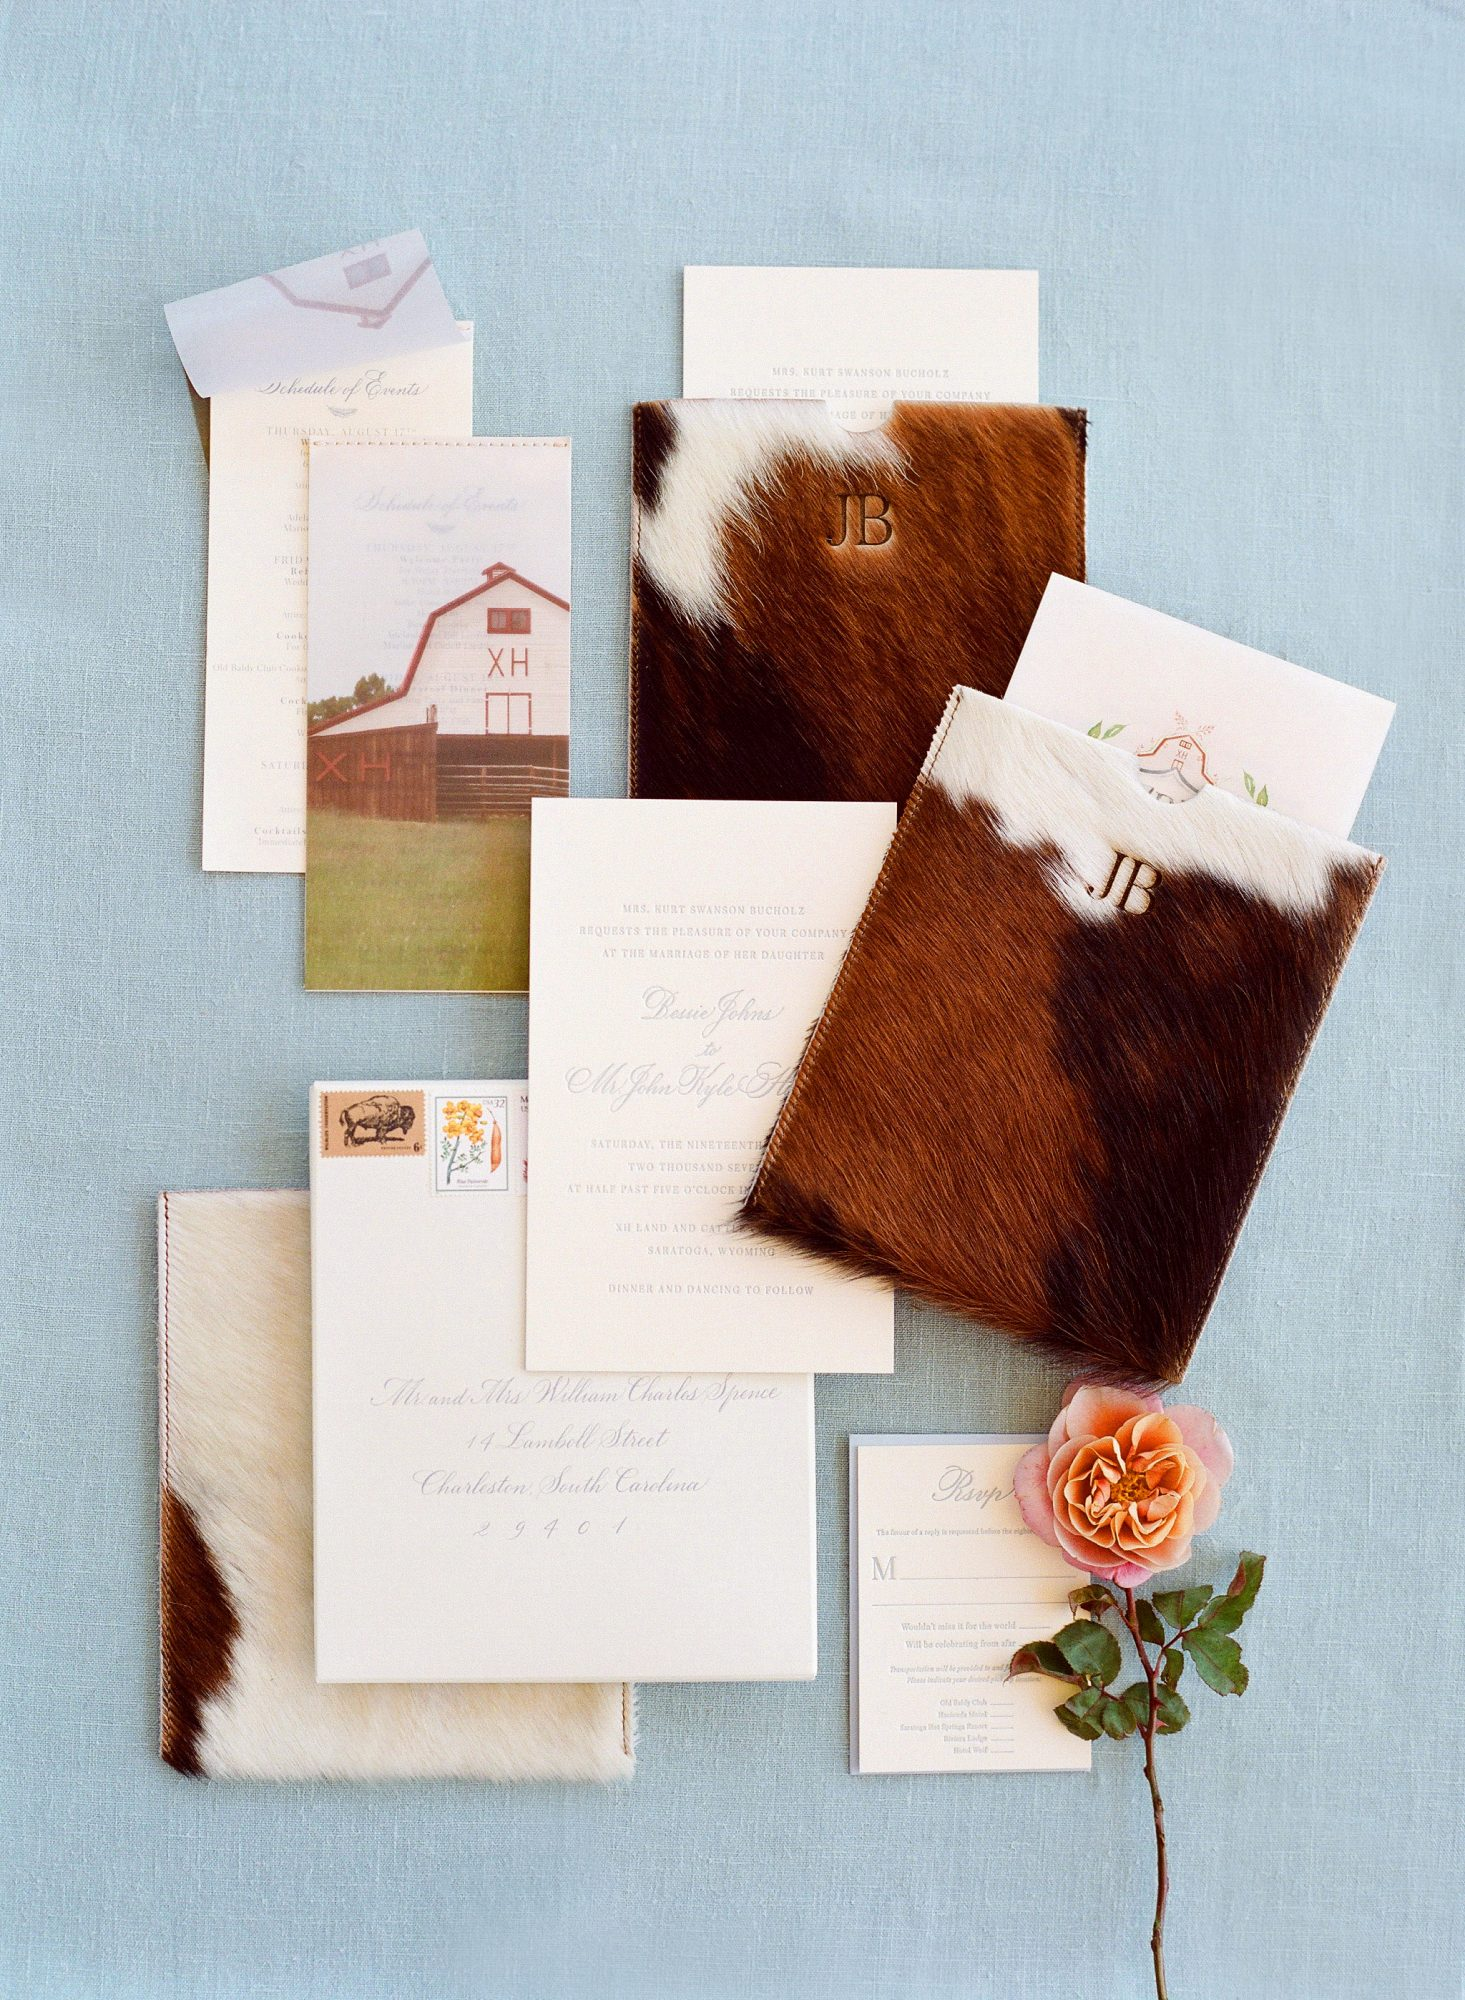 bessie john wedding invitation